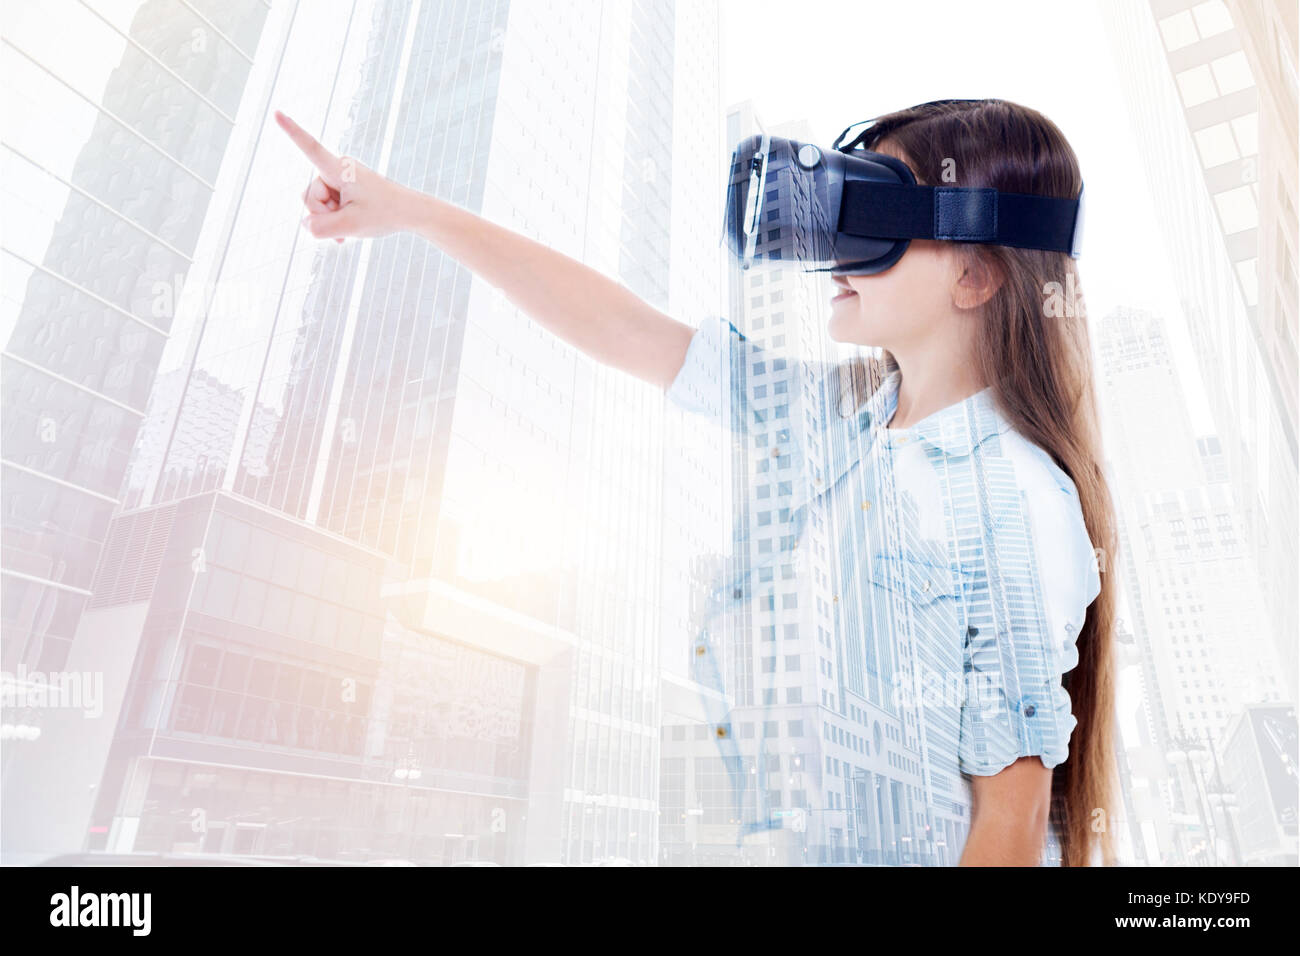 Pre-teen girl in VR headset pointing leftwards - Stock Image